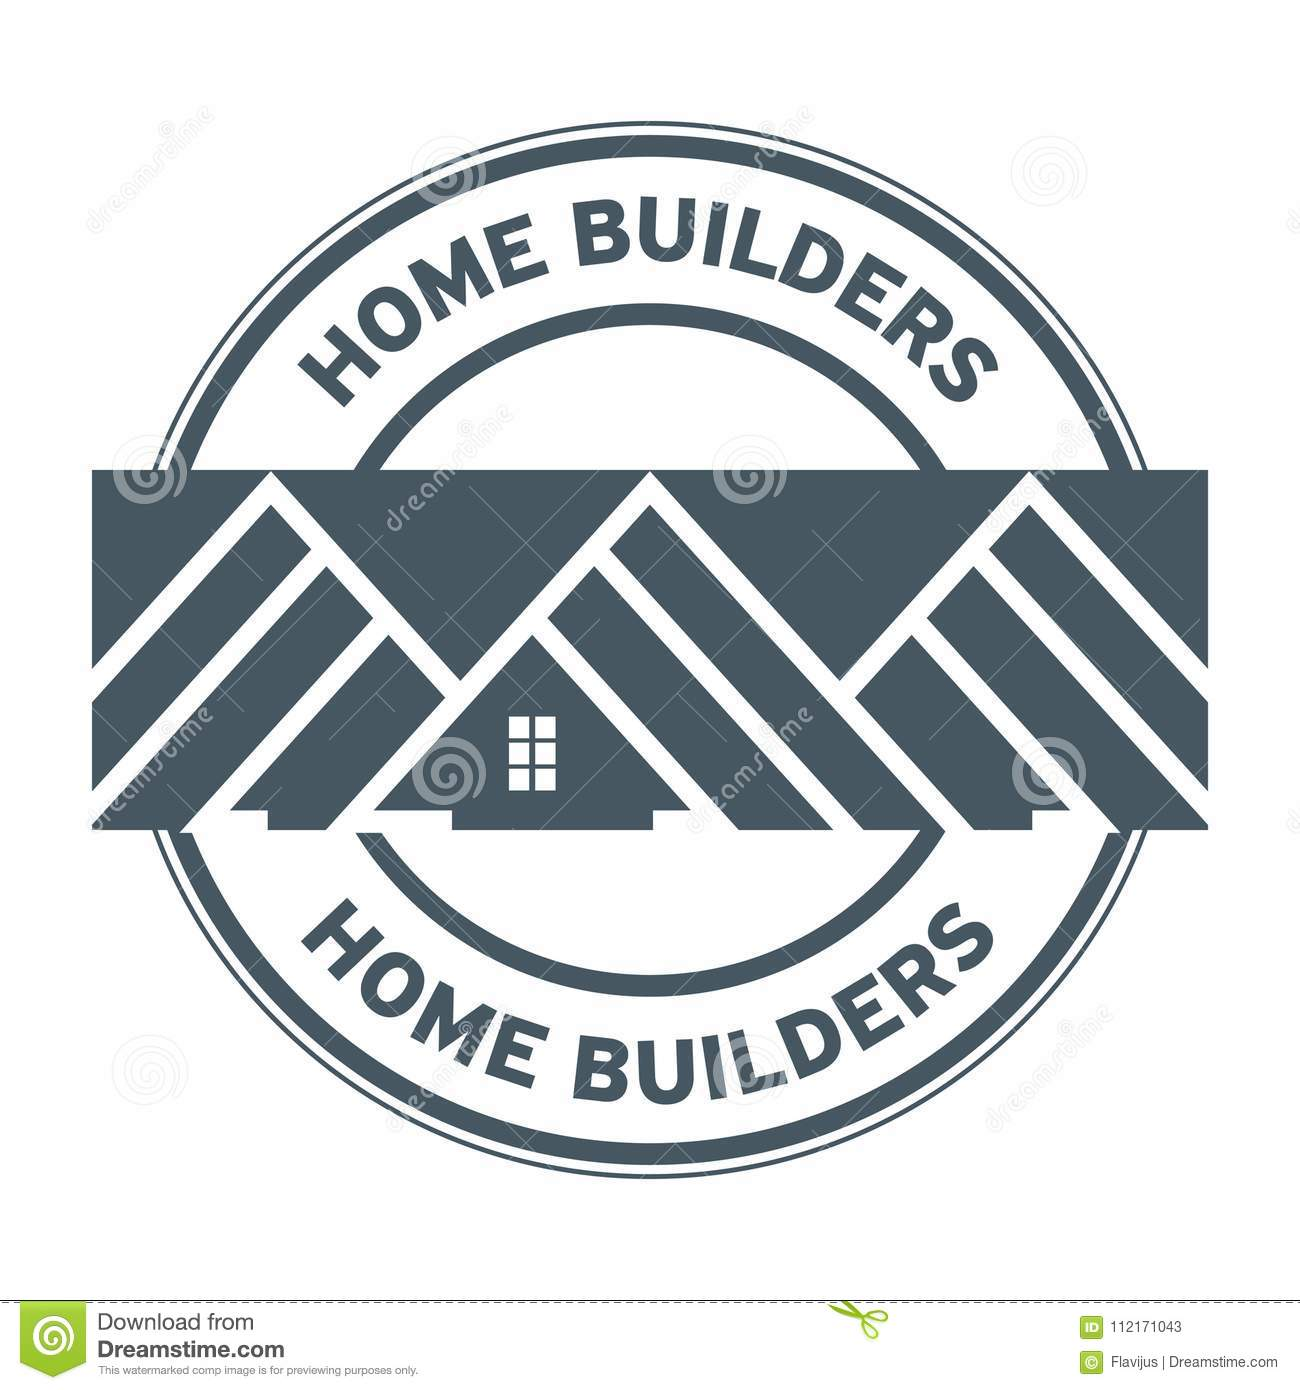 House Builders Stamp Or Sign Minimalistic For Building Industrial Company Vector Illustration